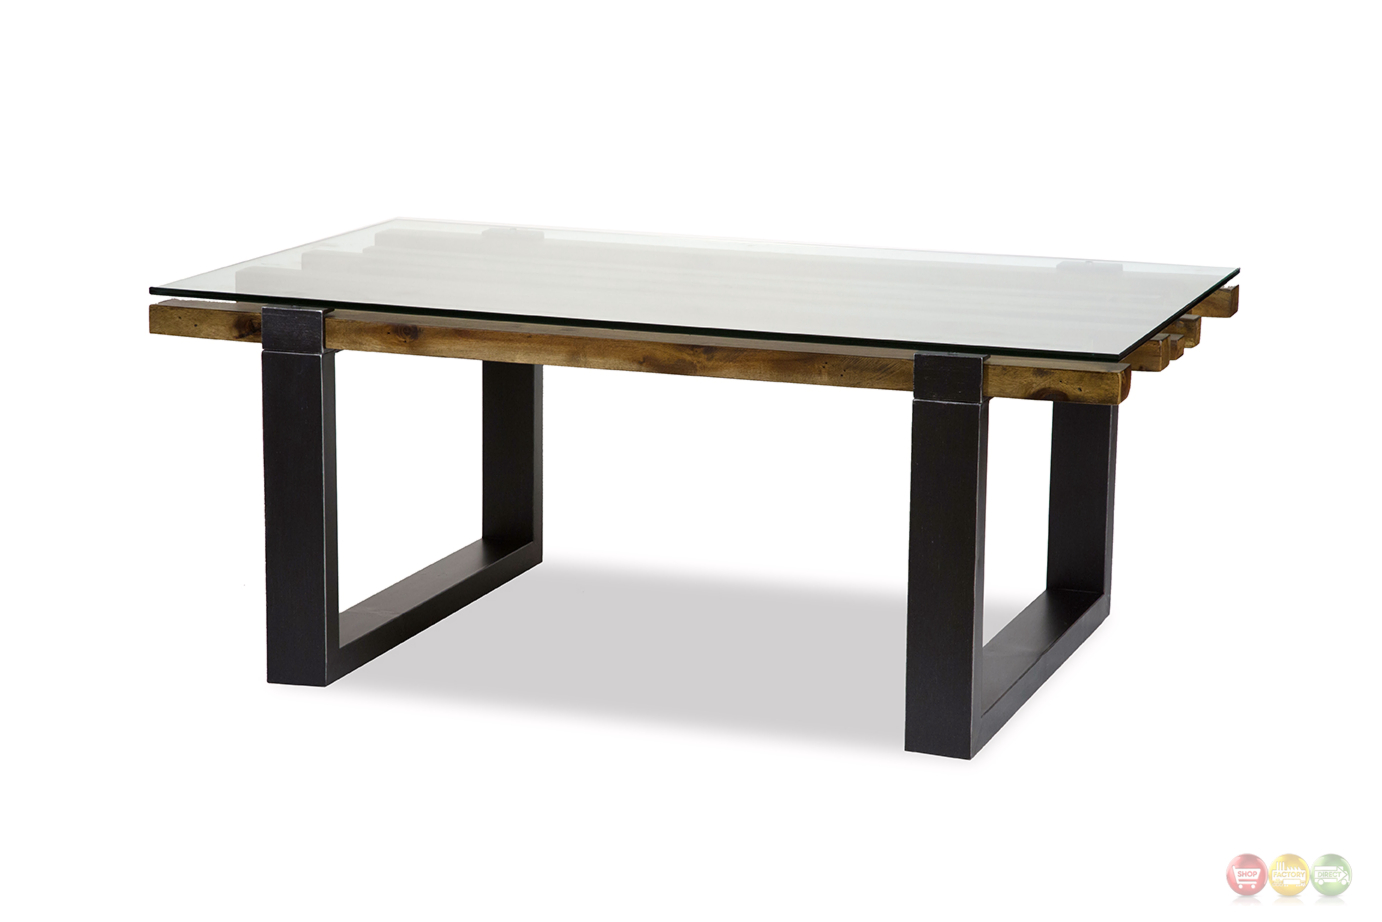 Keystone Rustic Modern Mahogany Coffee Table W Stylish Wood Glass Top: wood coffee table glass top